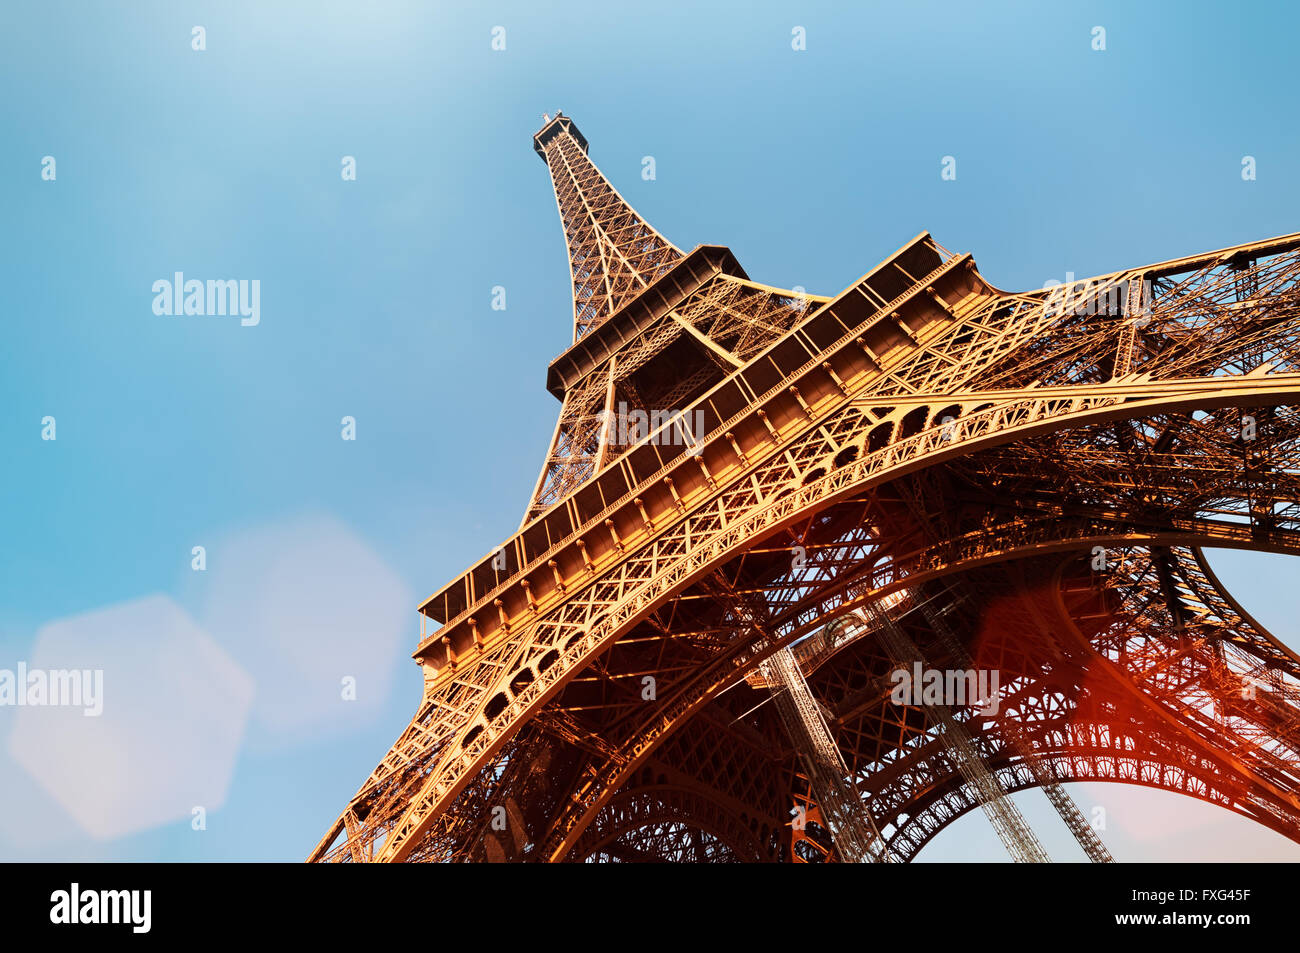 Eiffel Tower with lens flare and copy space. - Stock Image